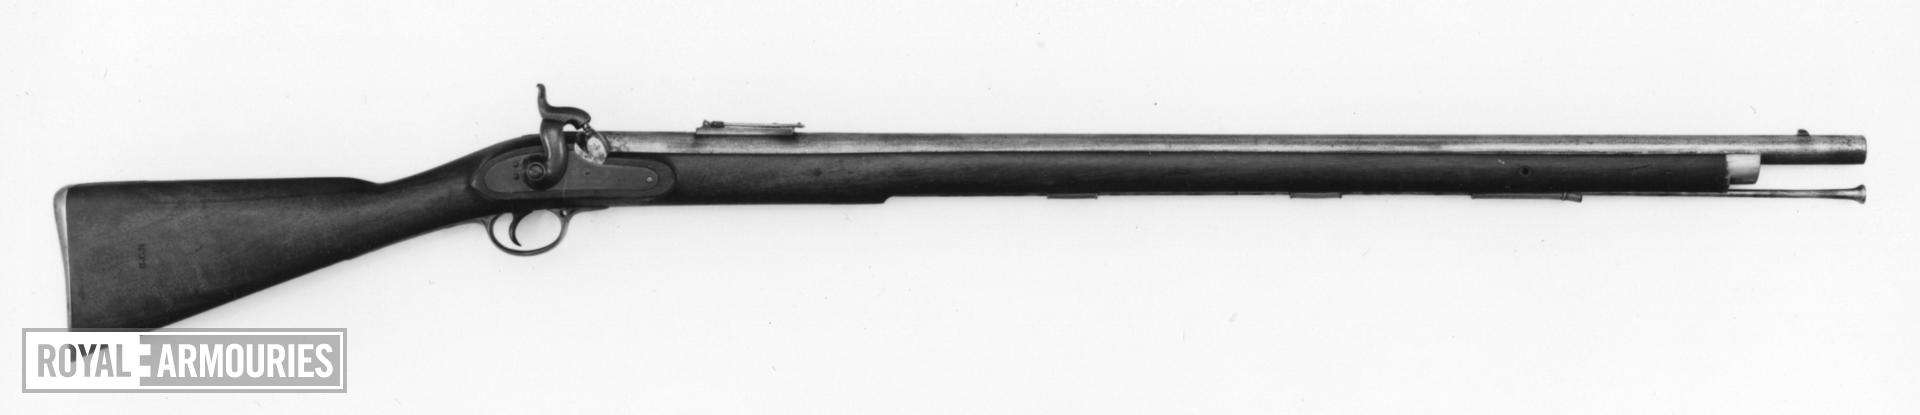 Percussion muzzle-loading rifle - Pattern 1842 By Deakin and Barnett, Enfield with Minie pattern sights, converted about 1850